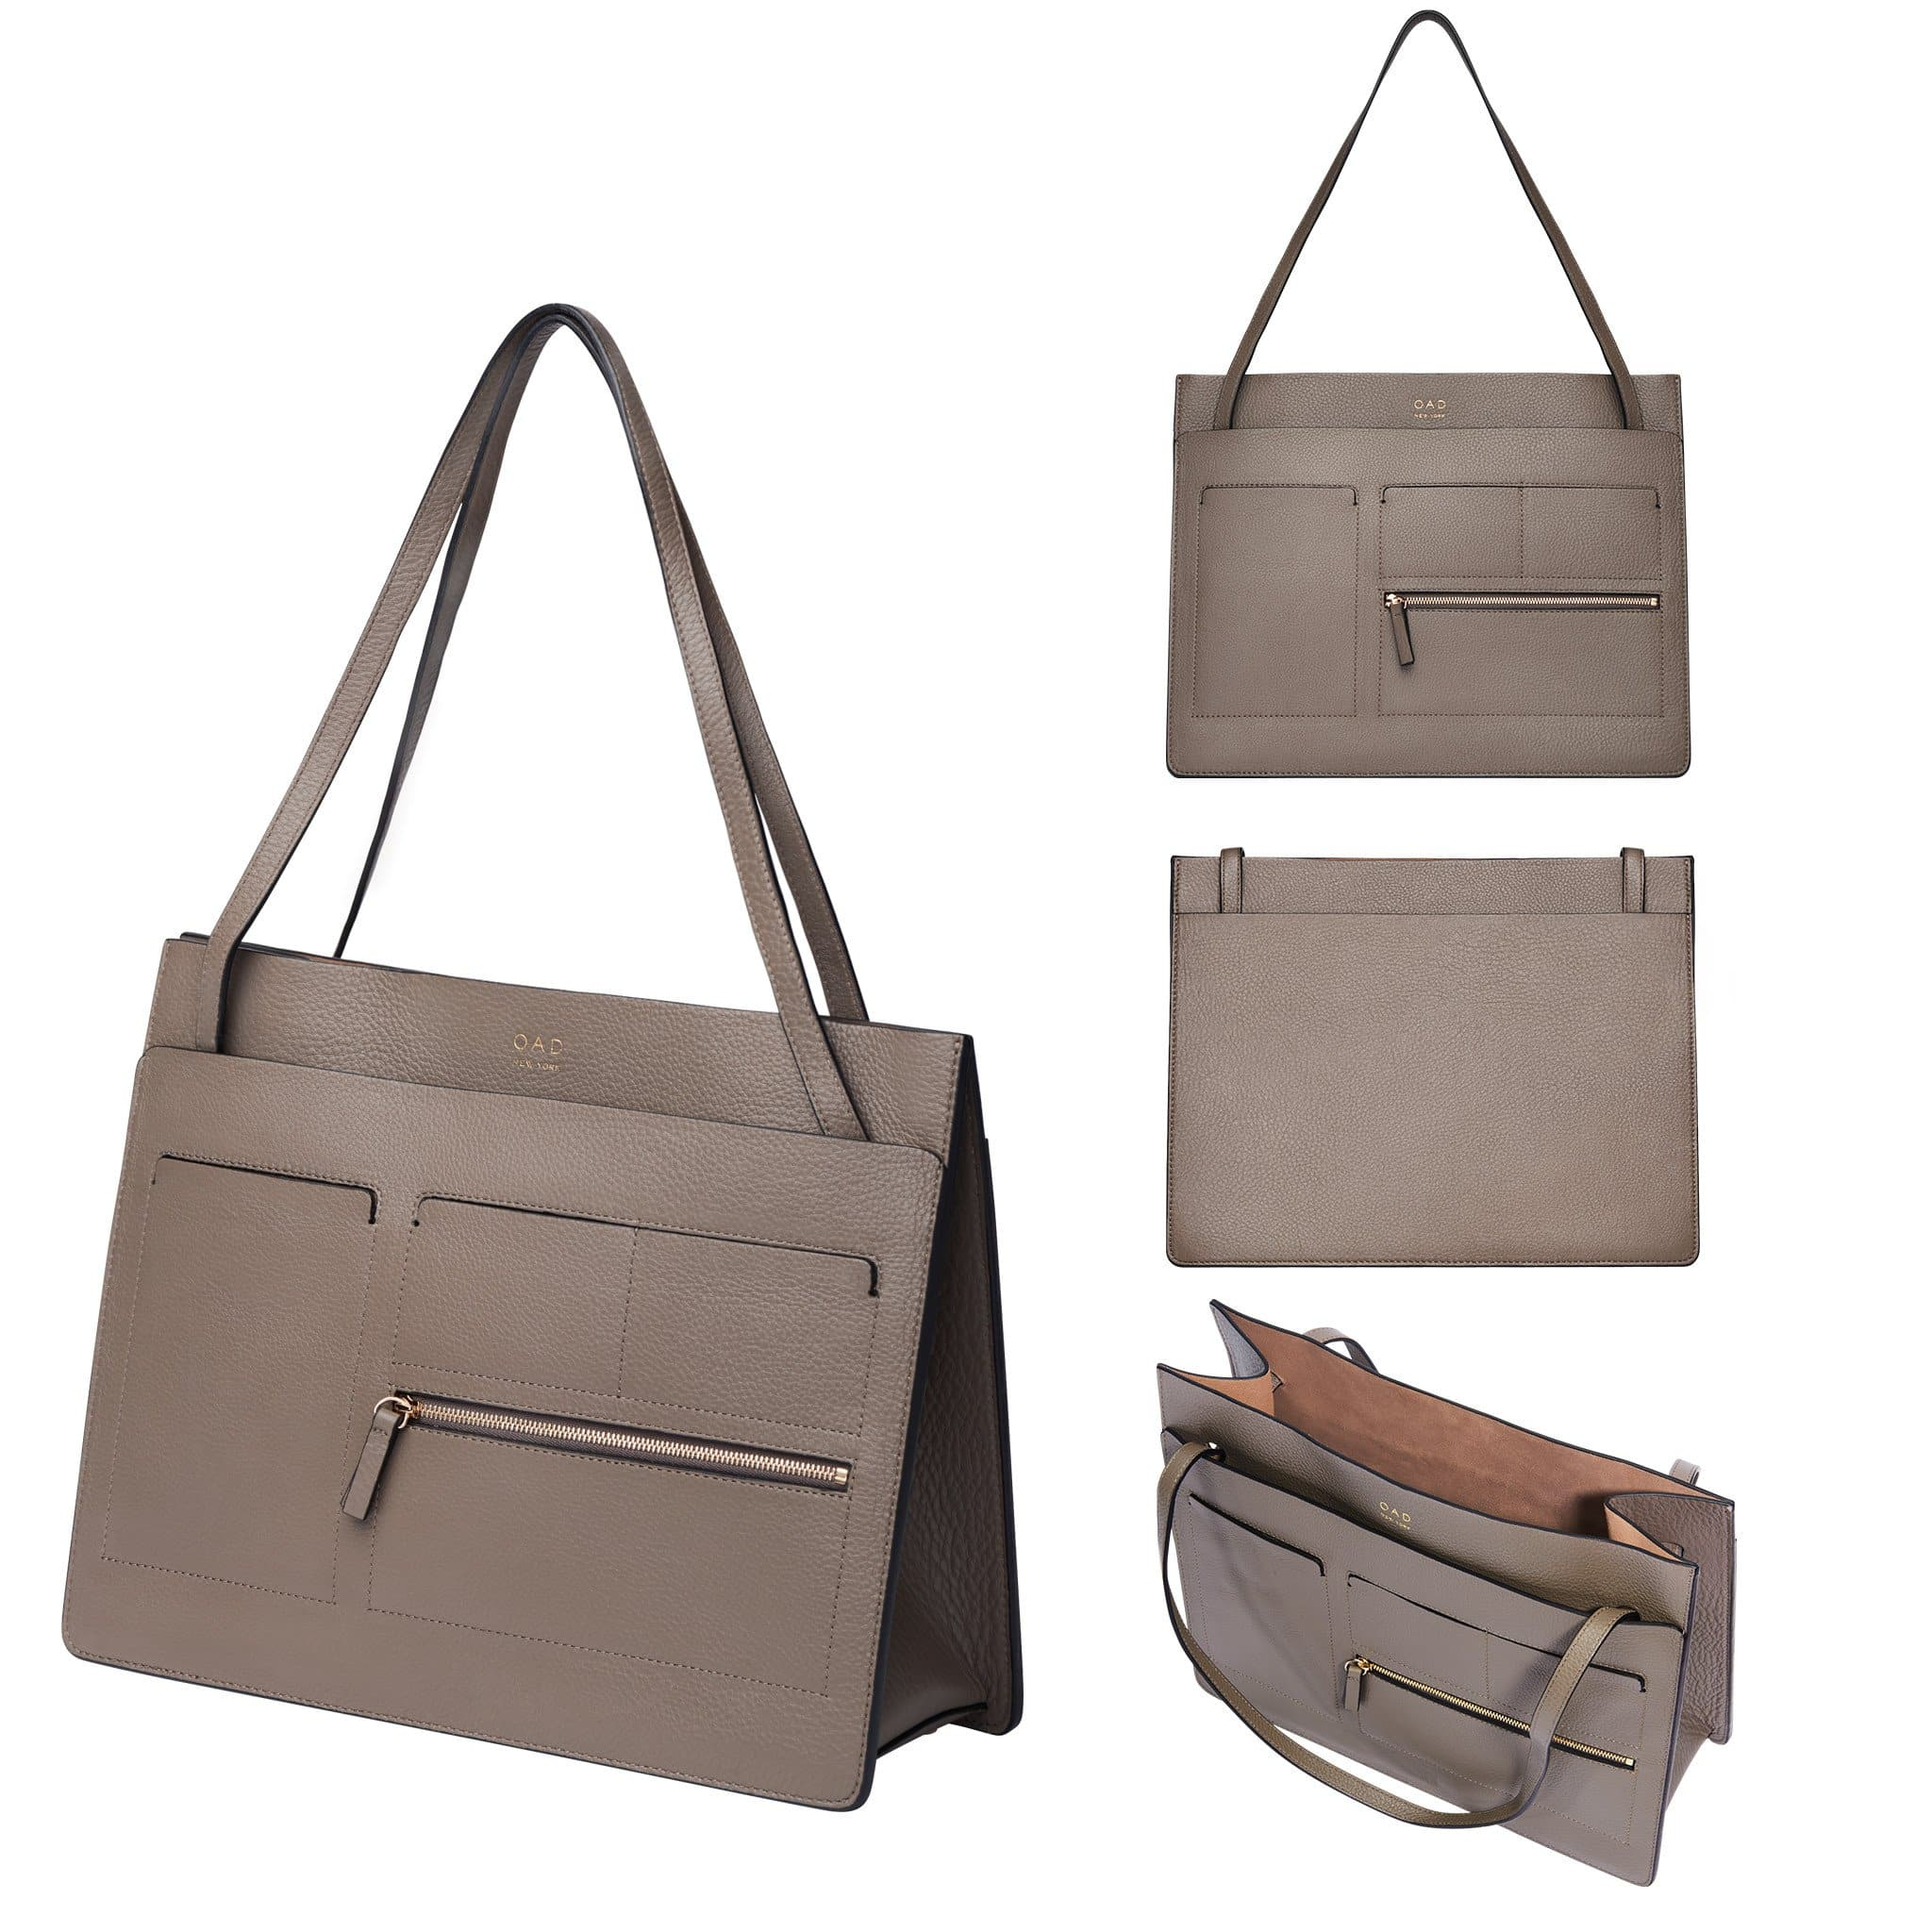 Kit Tote - Pebble Grey - OAD NEW YORK - 2